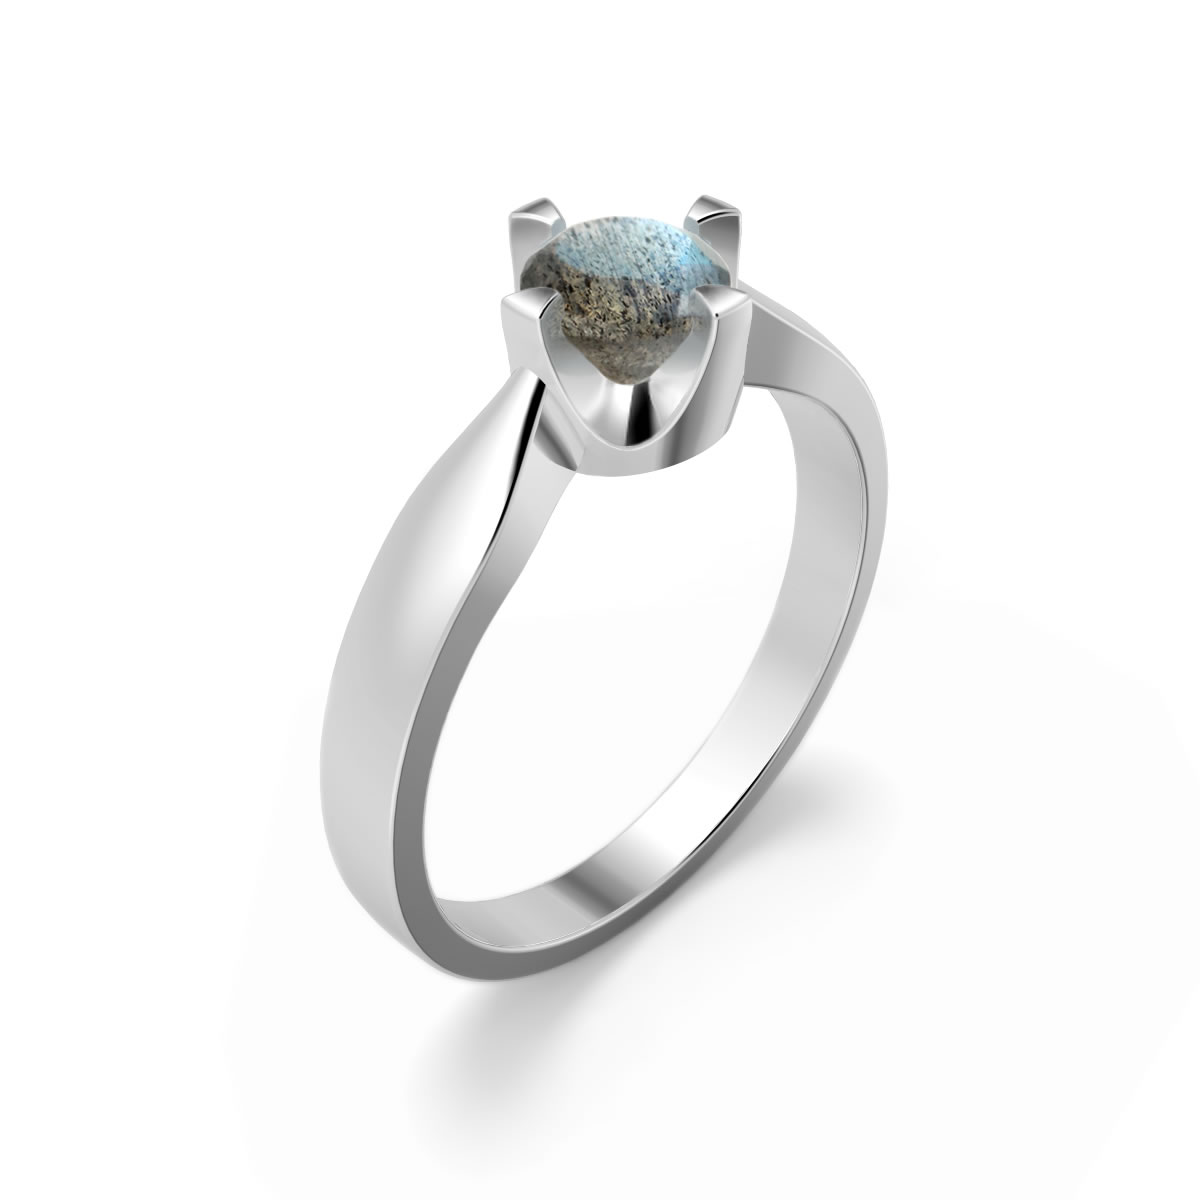 Elegant ring in sterling silver with a labradorite